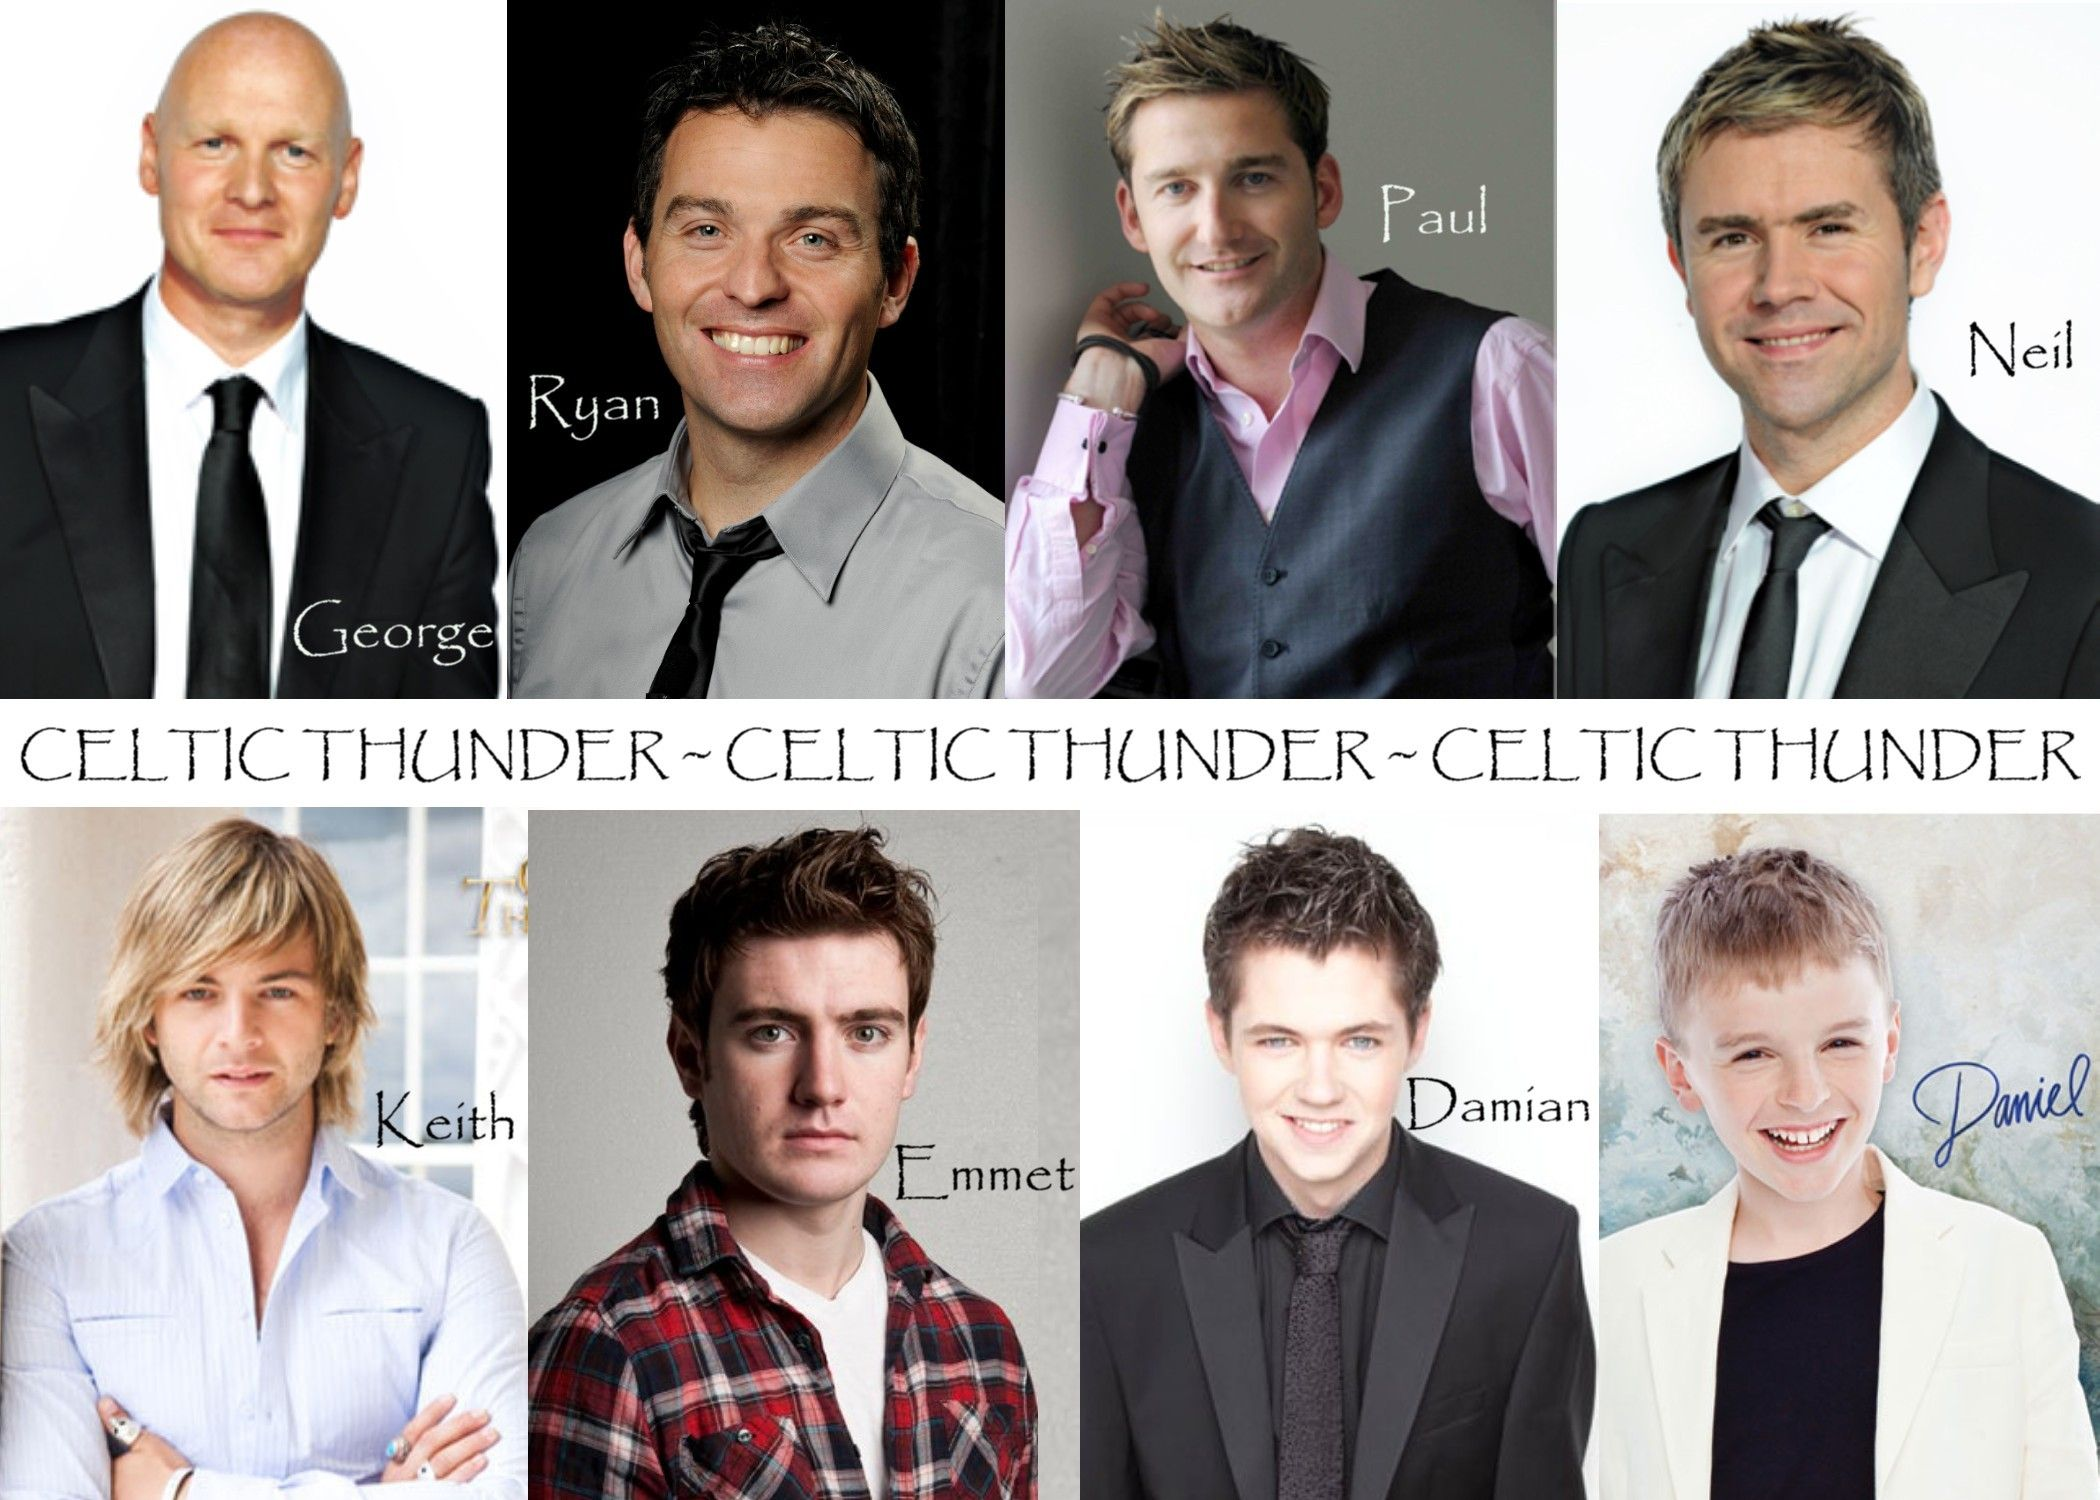 celtic thunder meet and greet tickets